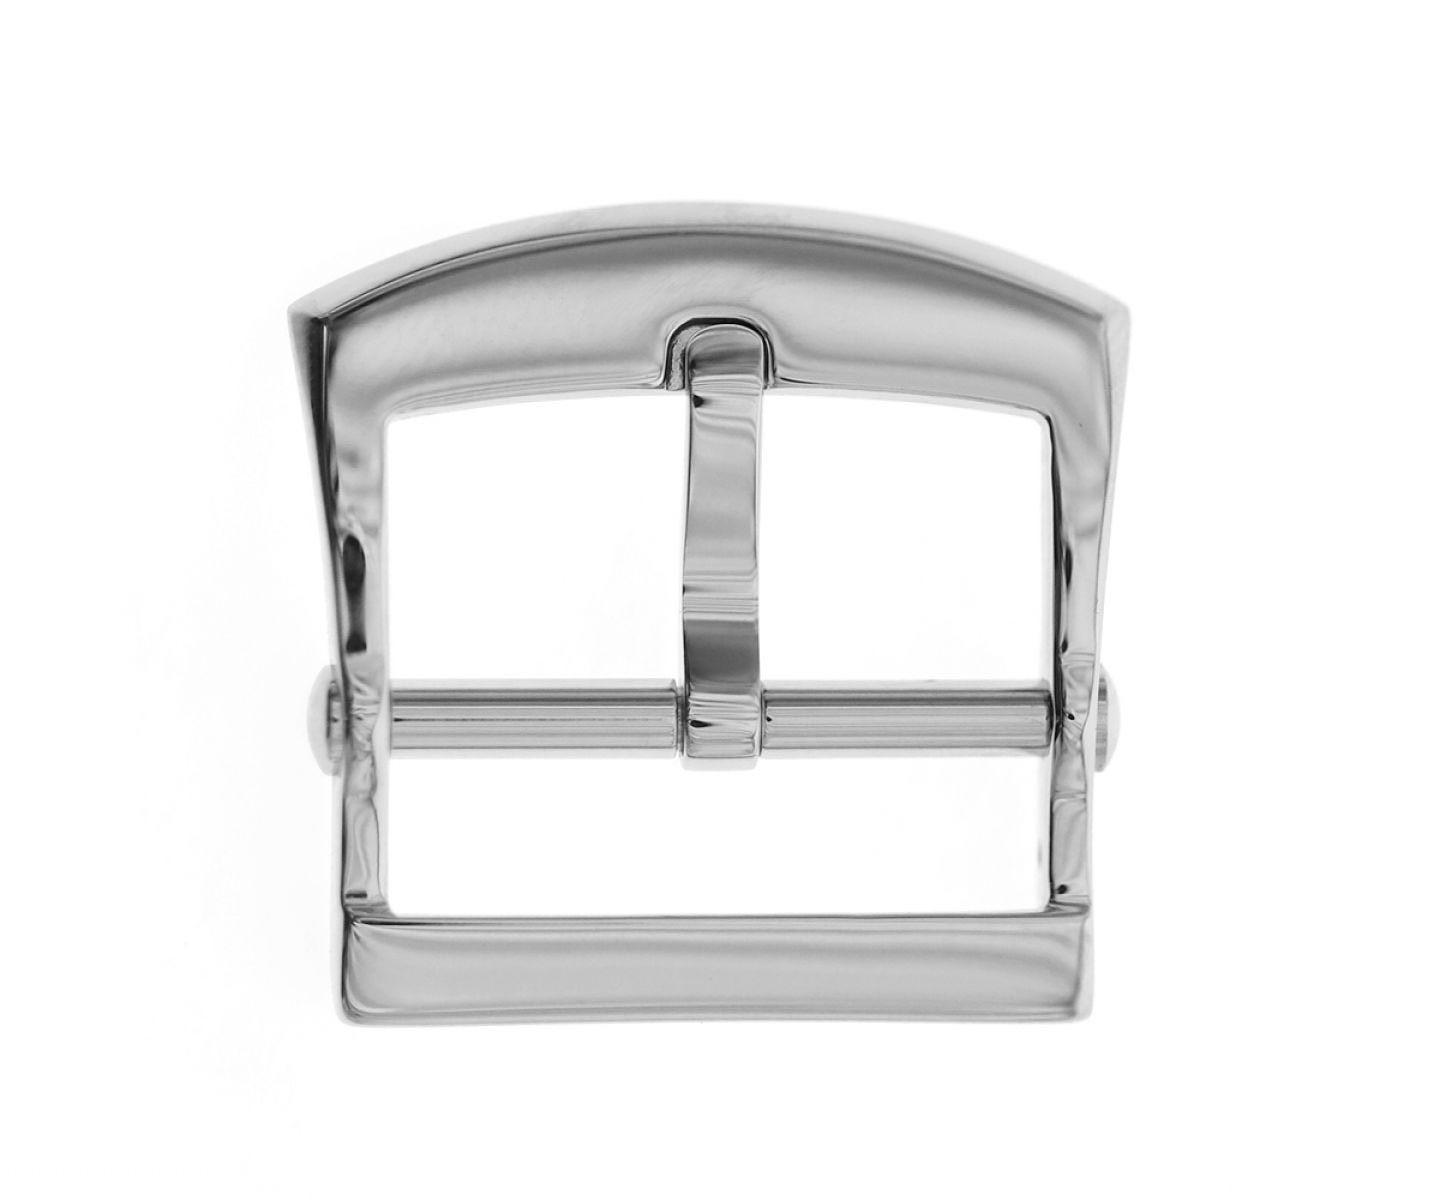 Stainless Steel High Grade Buckle 20mm. Silver Gloss